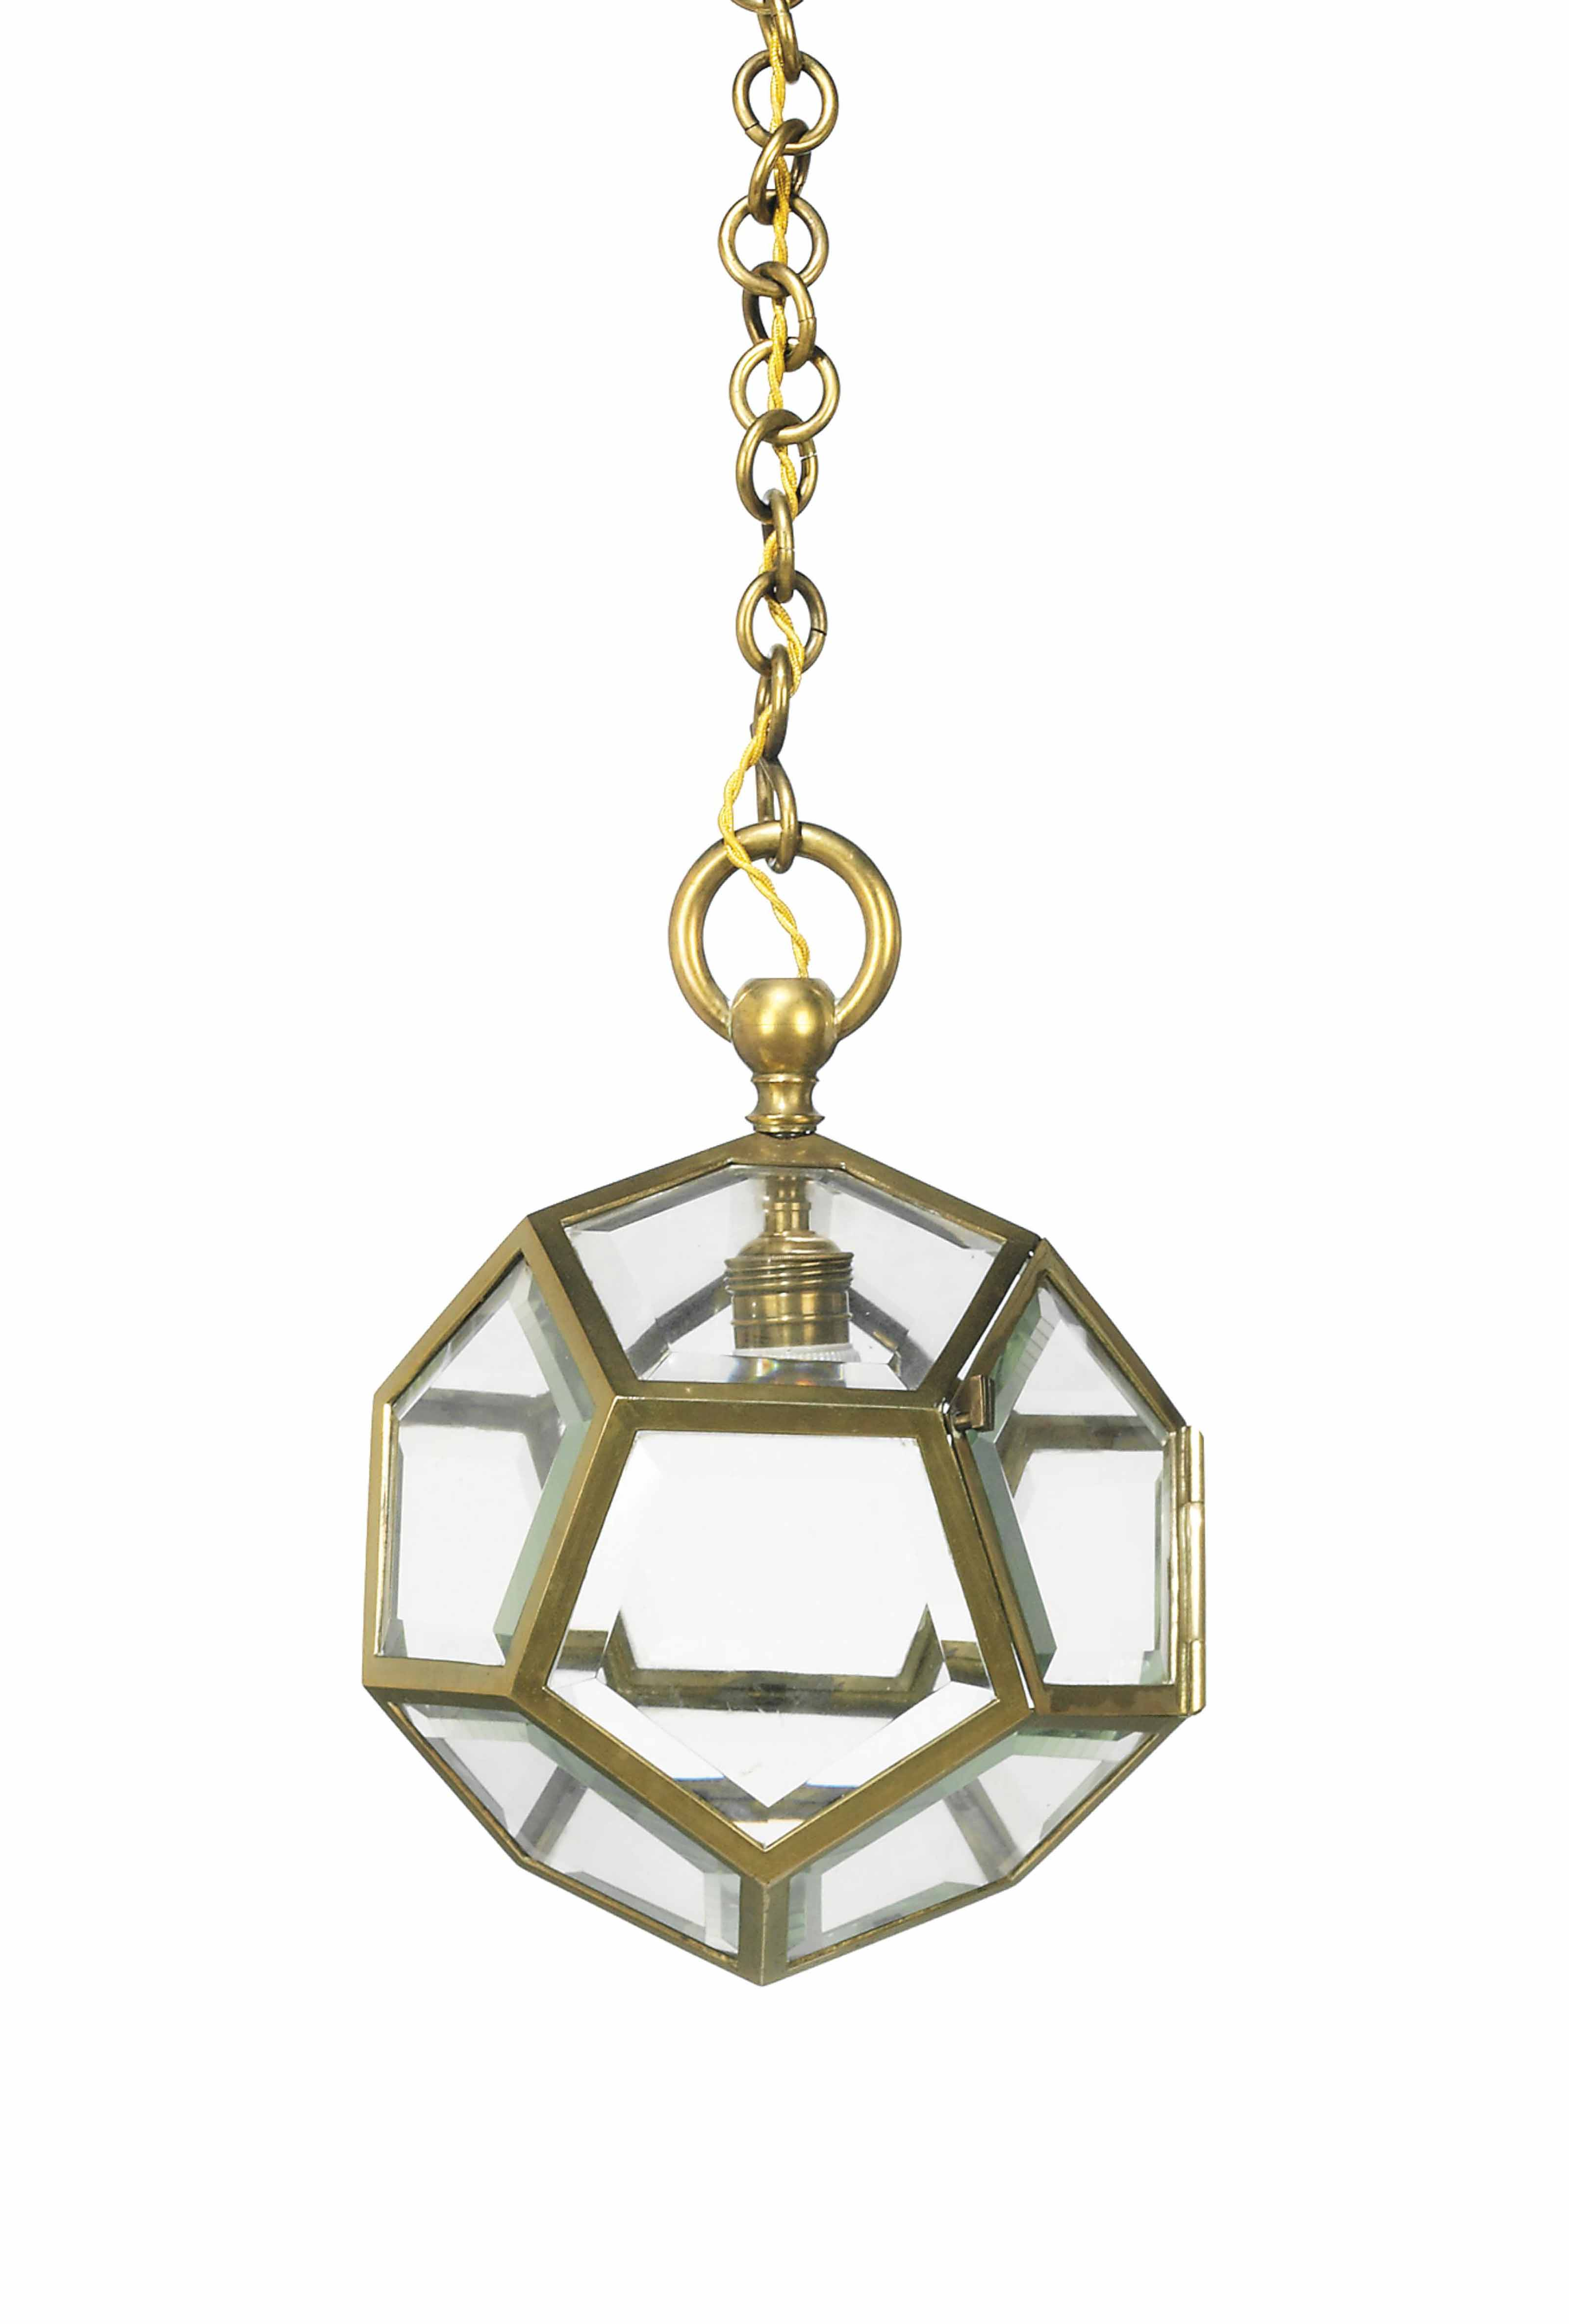 Adolf loos 1870 1933 dodecahedron pendant light circa for Dodecahedron light fixture